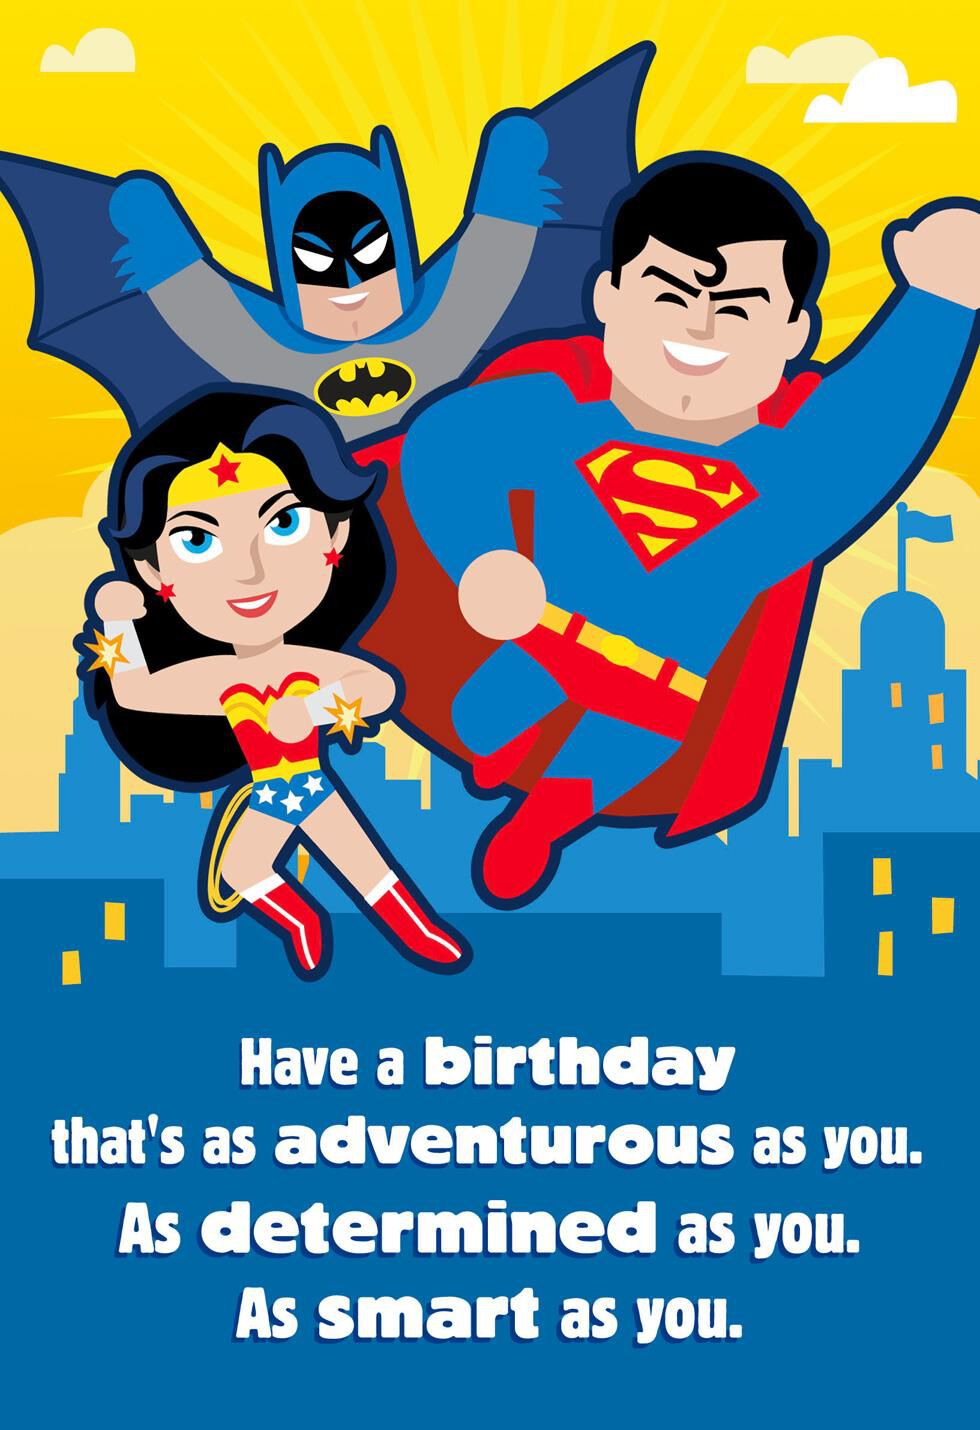 Justice league as adventurous as you musical birthday card justice league as adventurous as you musical birthday card greeting cards hallmark bookmarktalkfo Image collections